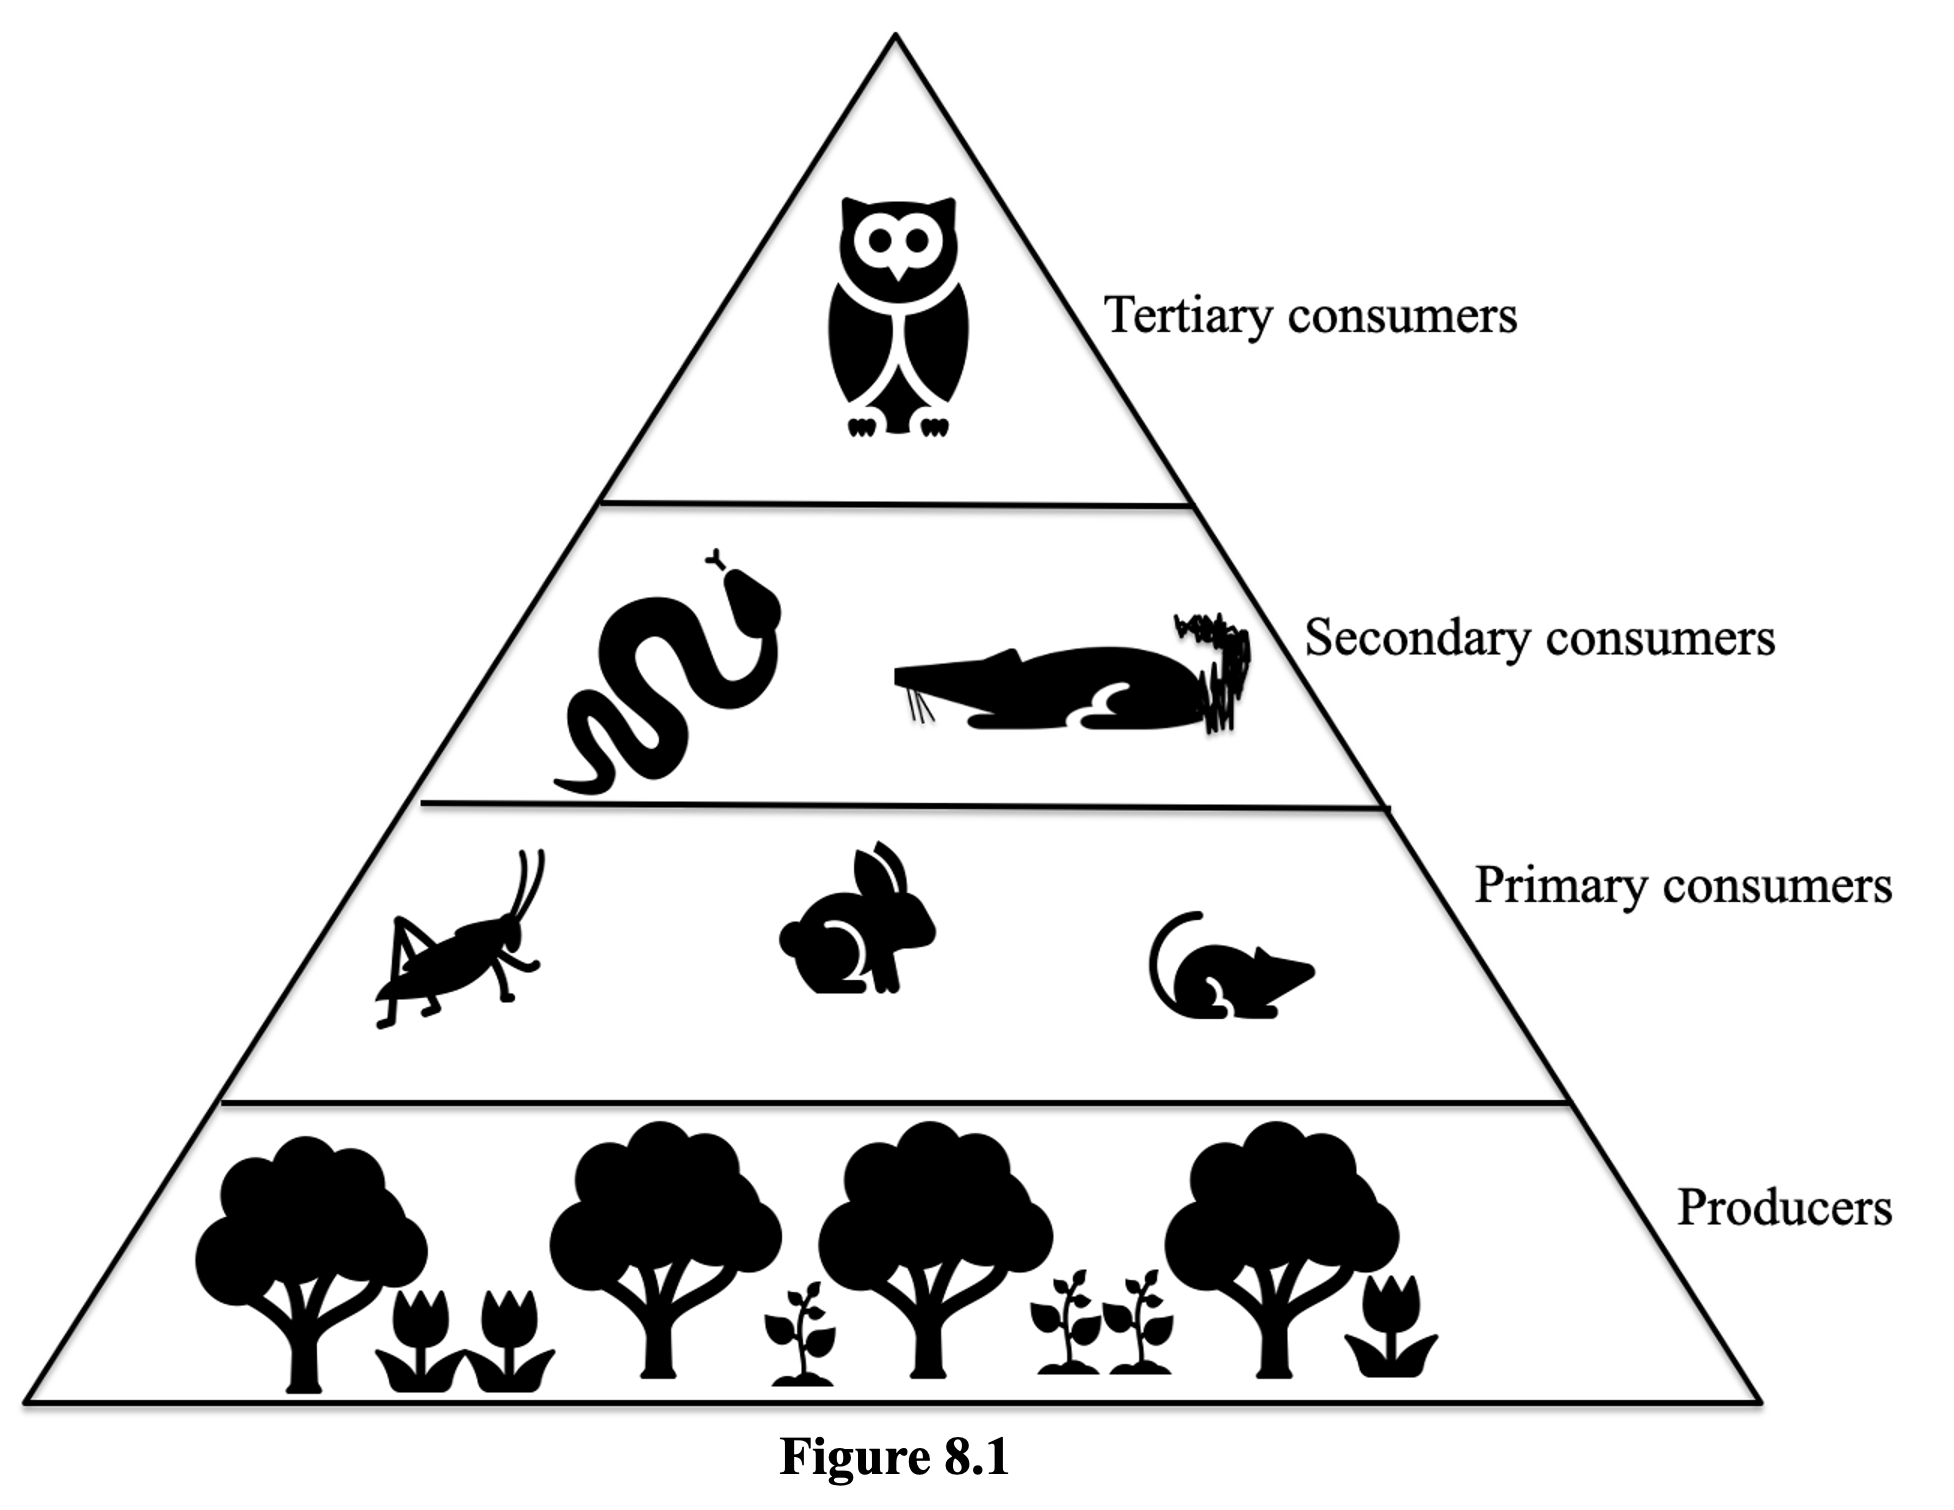 Figure 8.1 shows a simple triangular shaped tropic structure. At the base are the producers including trees and other plants. Above them are the Primary consumers including a grasshopper, a rabbit and a field mouse. Above them are the secondary consumers including a snake and a rodent. At the top us the tertiary consumer and owl.